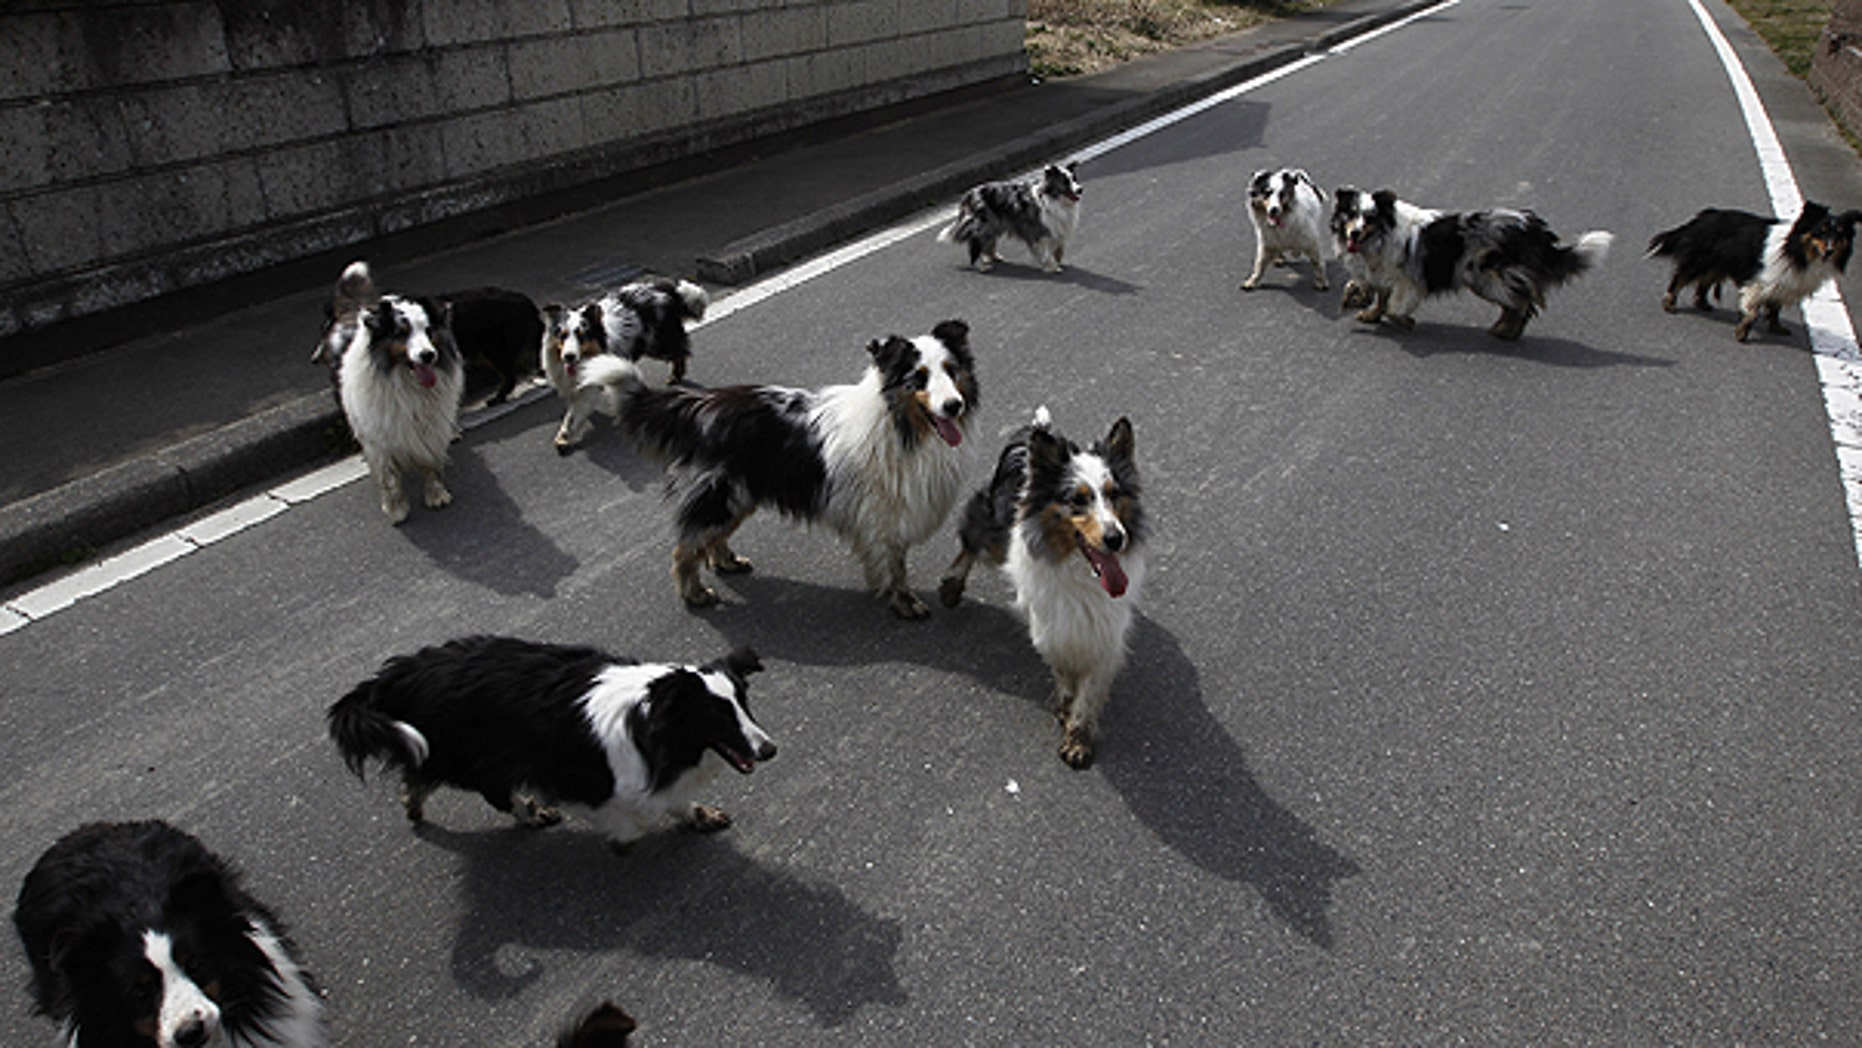 In this April 7, 2011 file photo, dogs wander around a town of Minami Soma, inside the deserted evacuation zone established for the 20 kilometer radius around the Fukushima Dai-ichi nuclear complex in northeastern Japan.